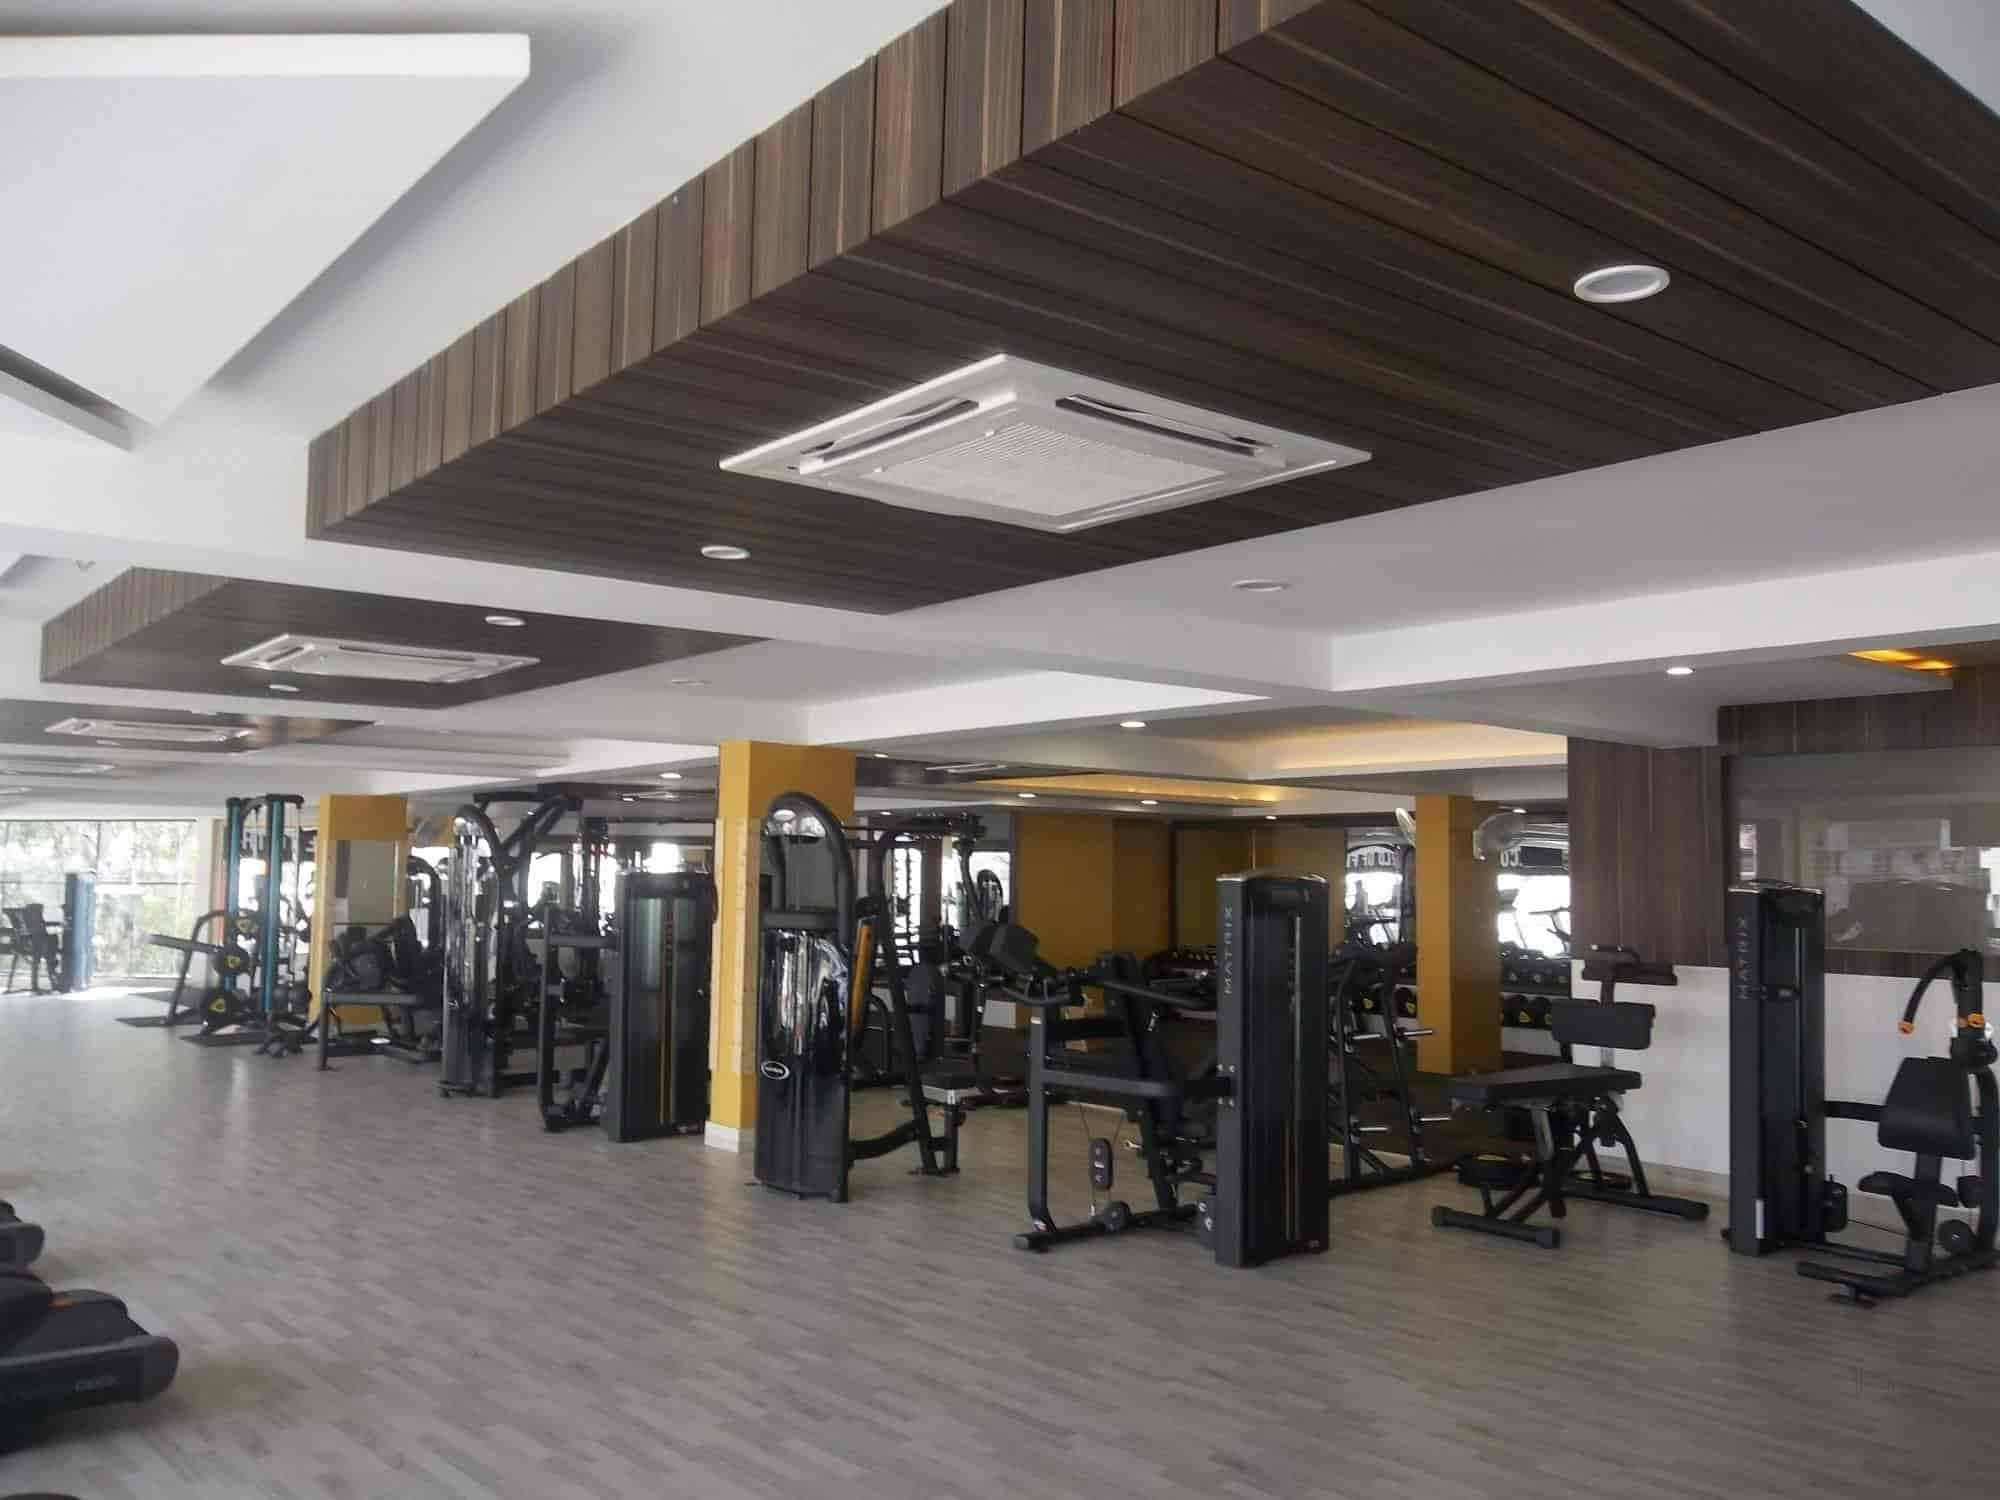 Gold Gym Indore Offer | anotherhackedlife.com